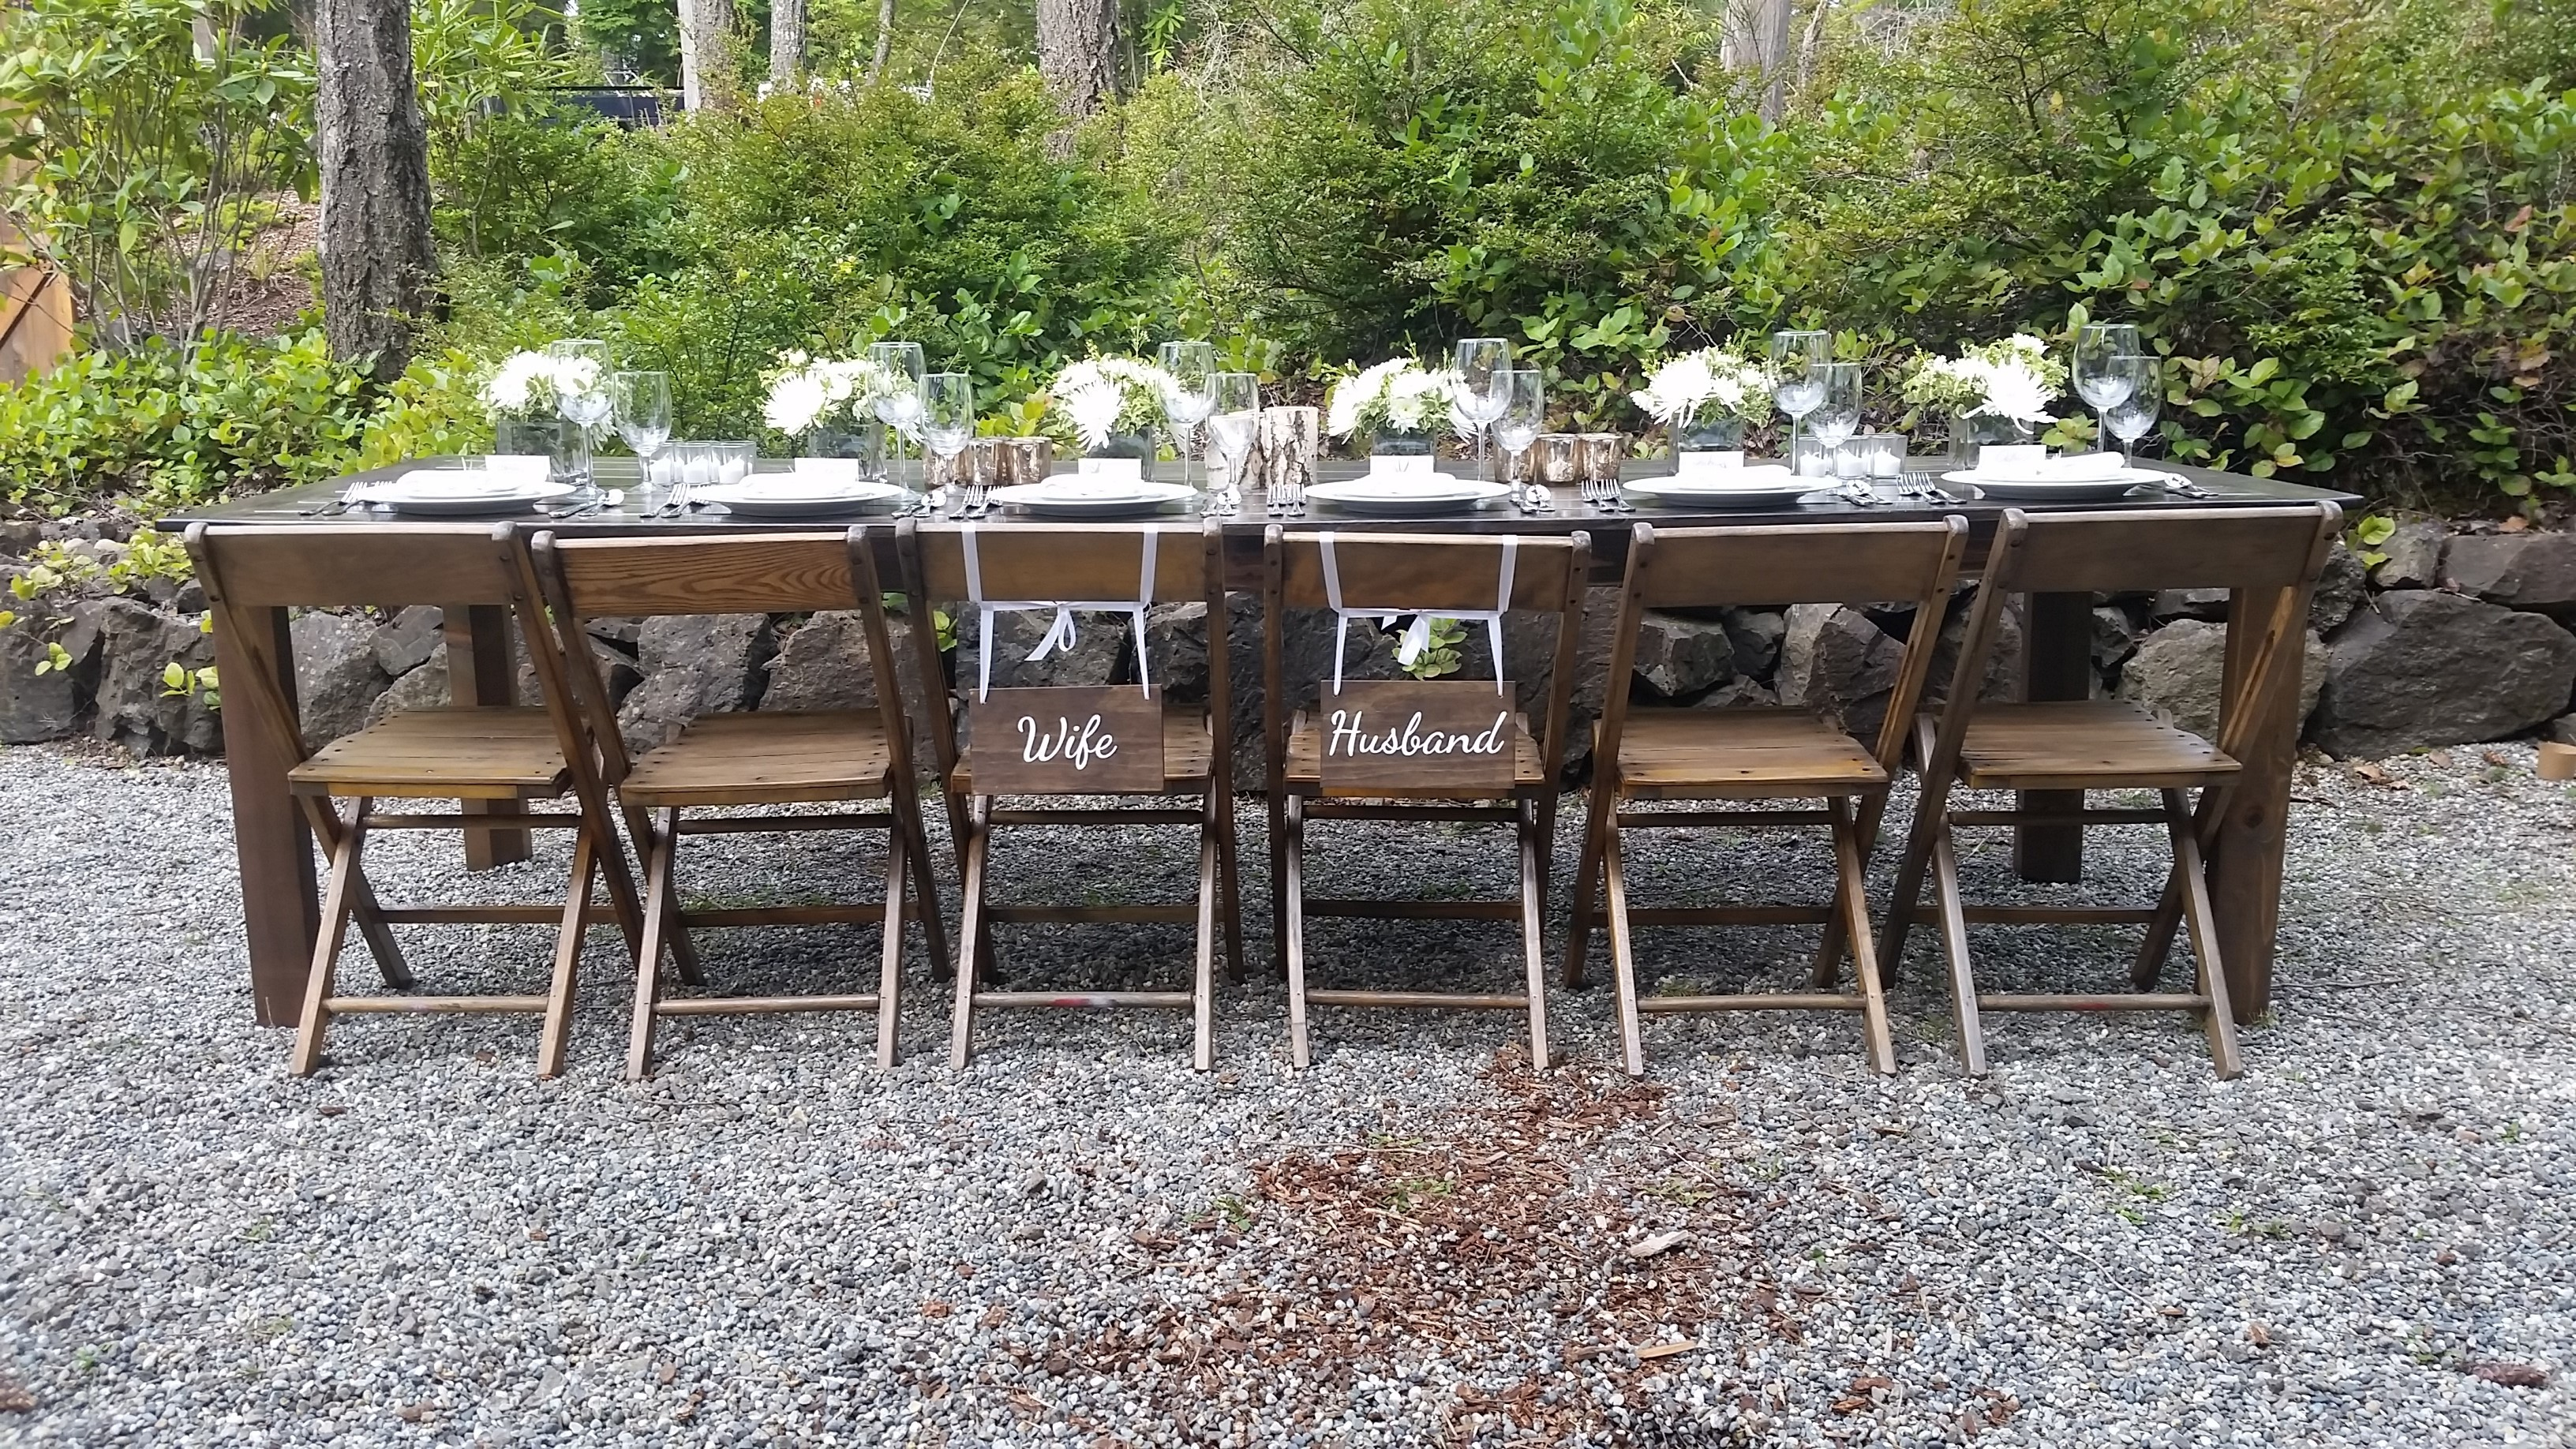 Where Can I Rent Tables And Chairs Olympic Farm Style Events Event Rentals